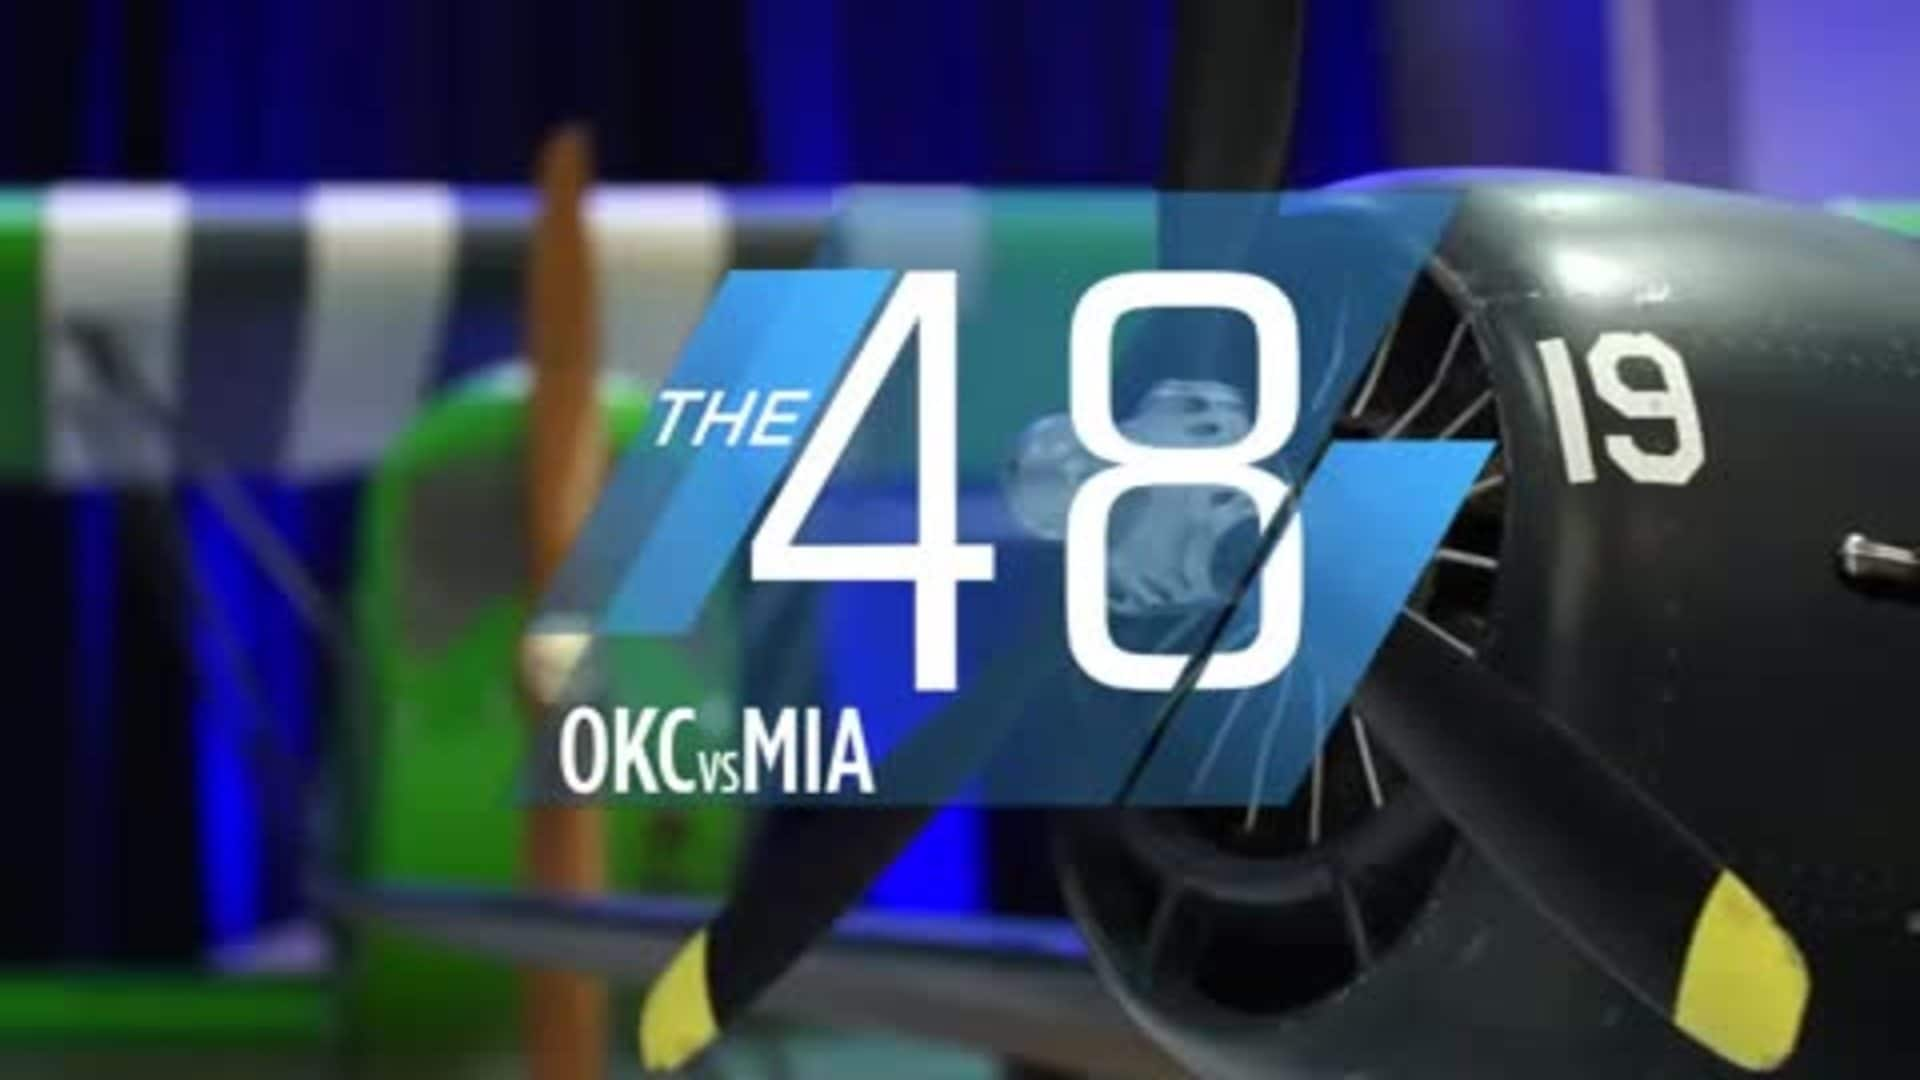 The 48: Not Enough